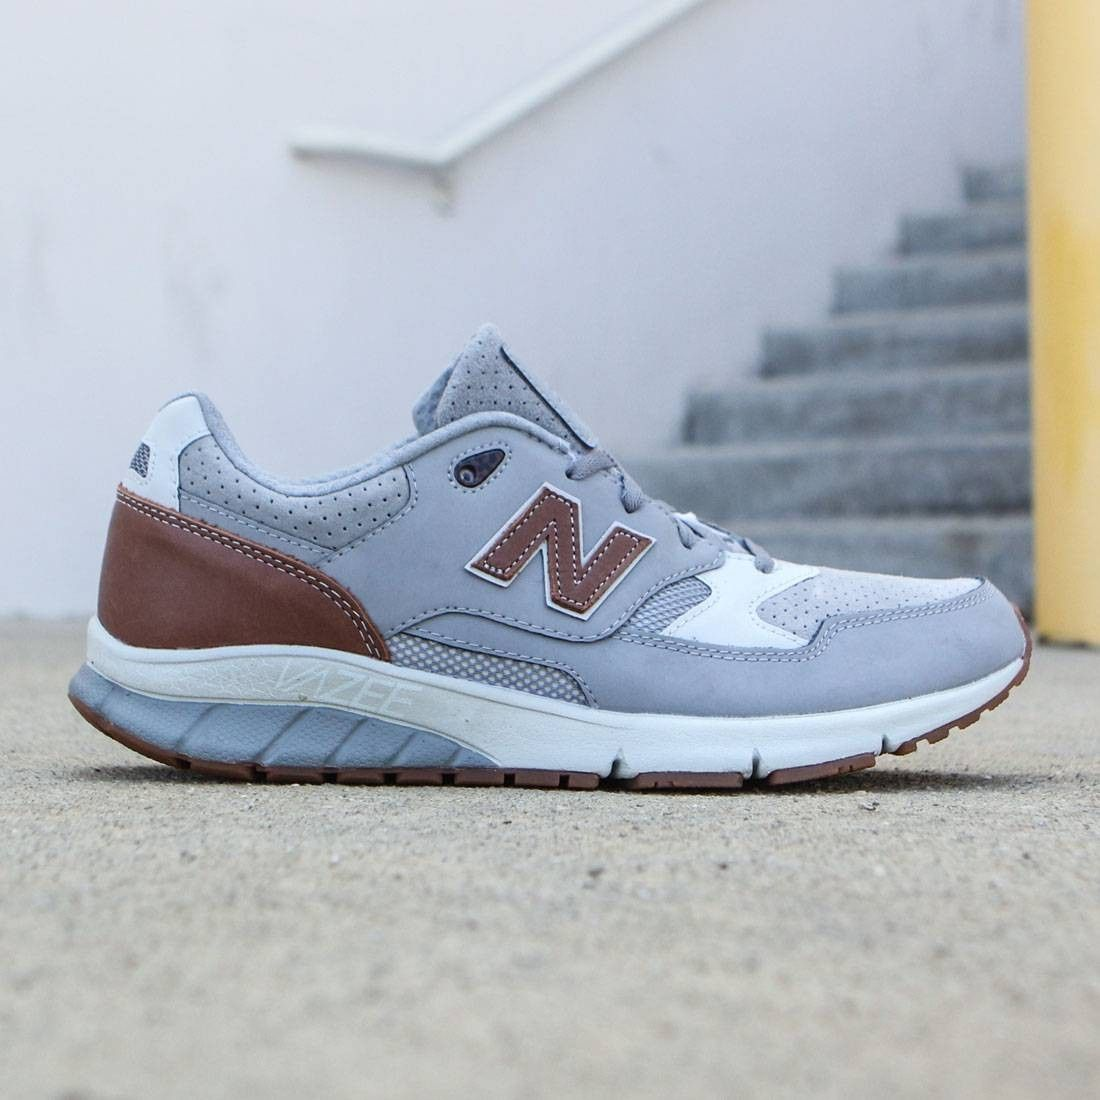 new balance 530 vazee price